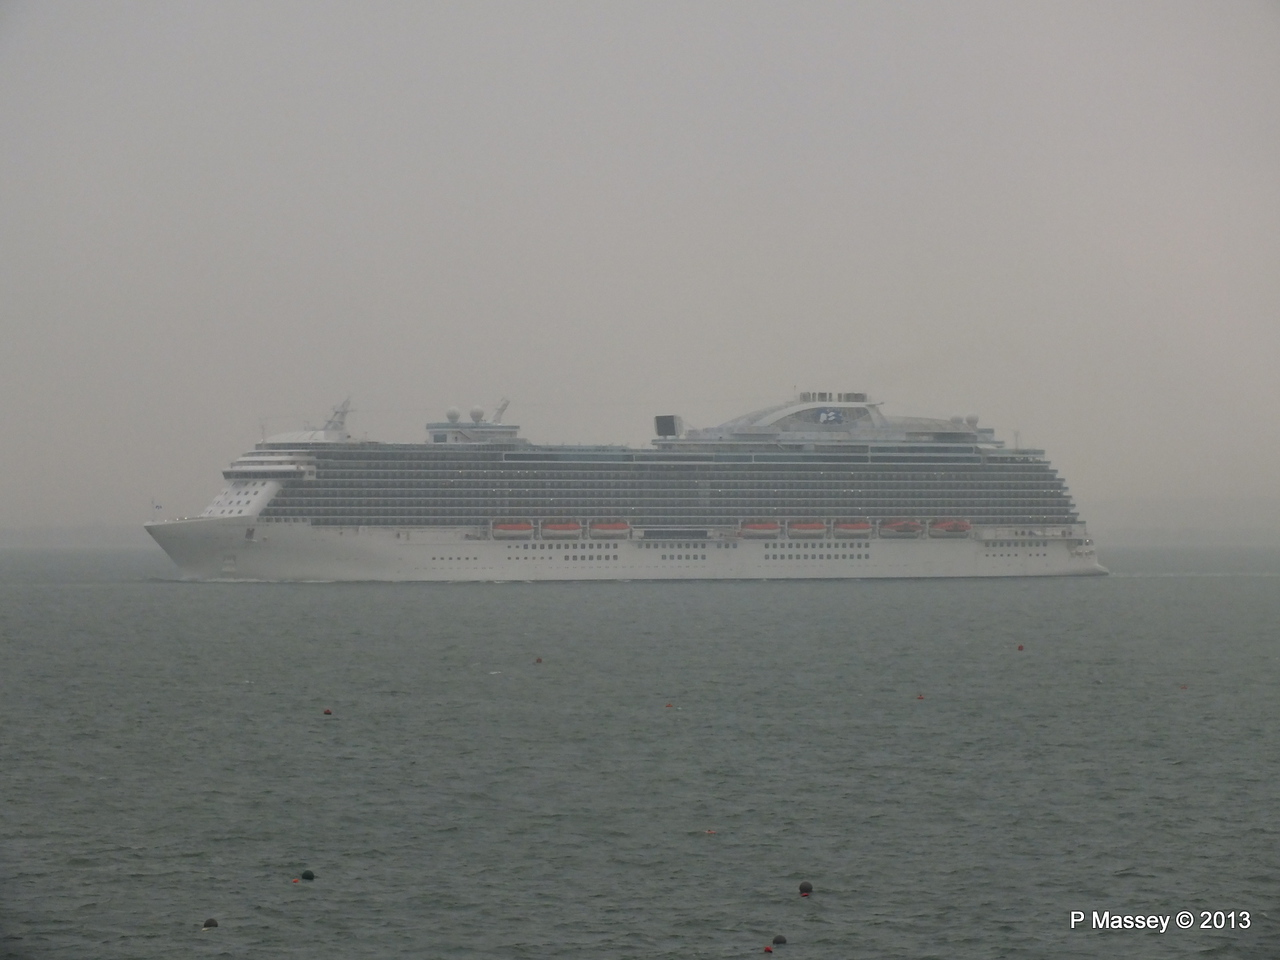 ROYAL PRINCESS Cowes PDM 07-06-2013 10-05-23